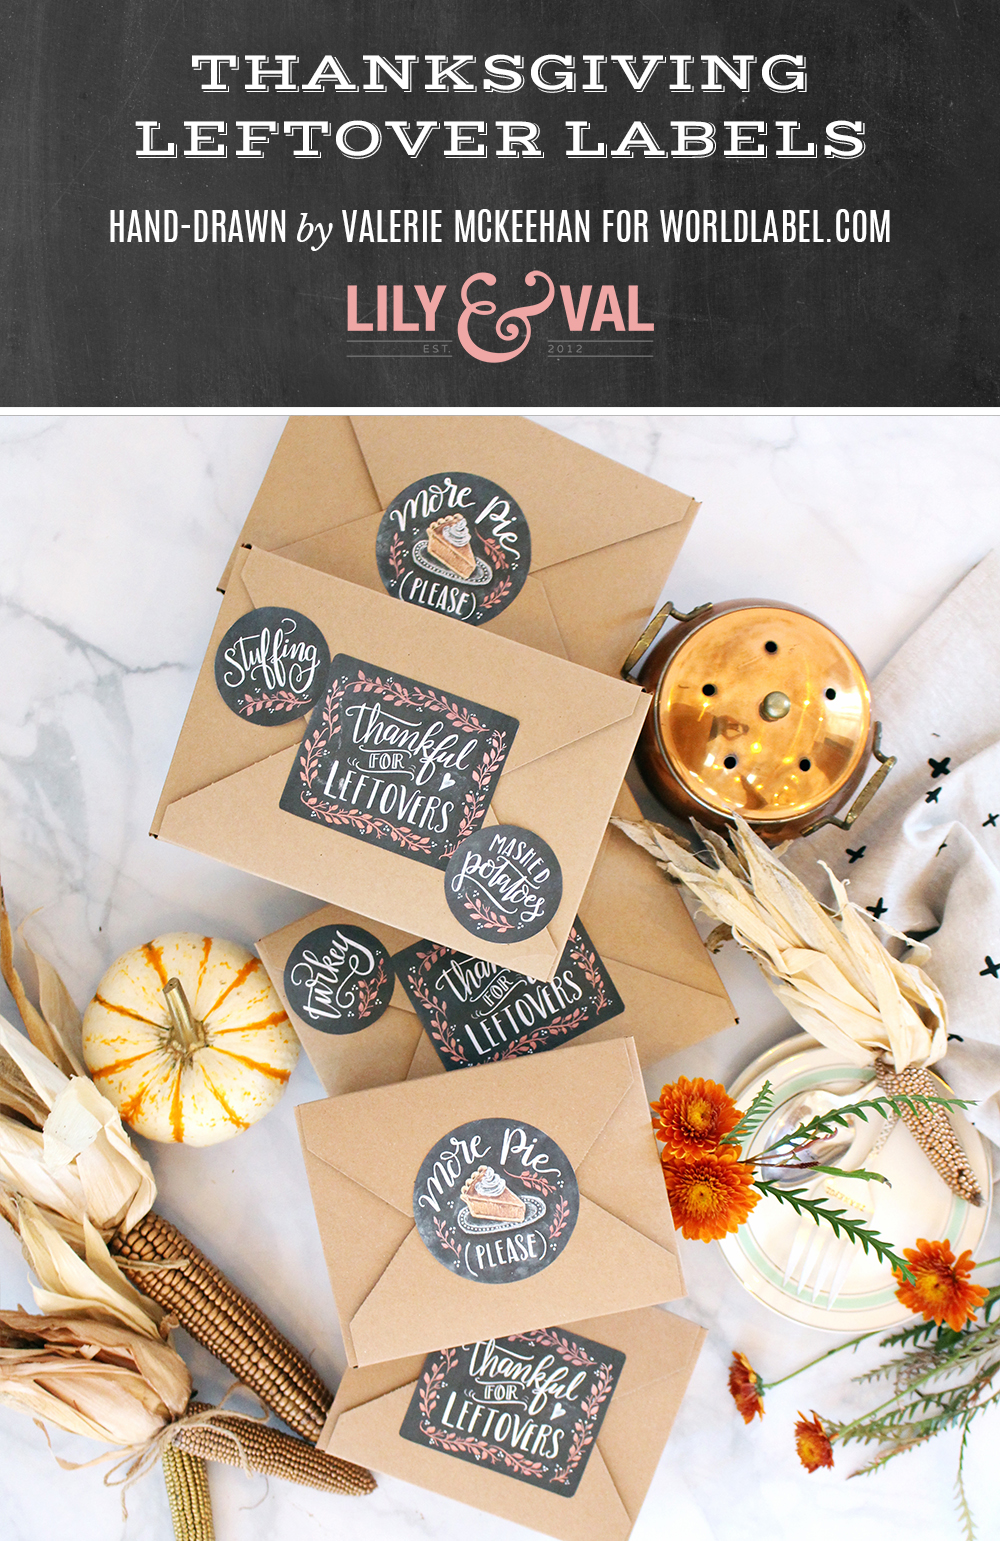 Hand-drawn chalk art labels for your Thanksgiving leftover boxes. Free Thanksgiving download!